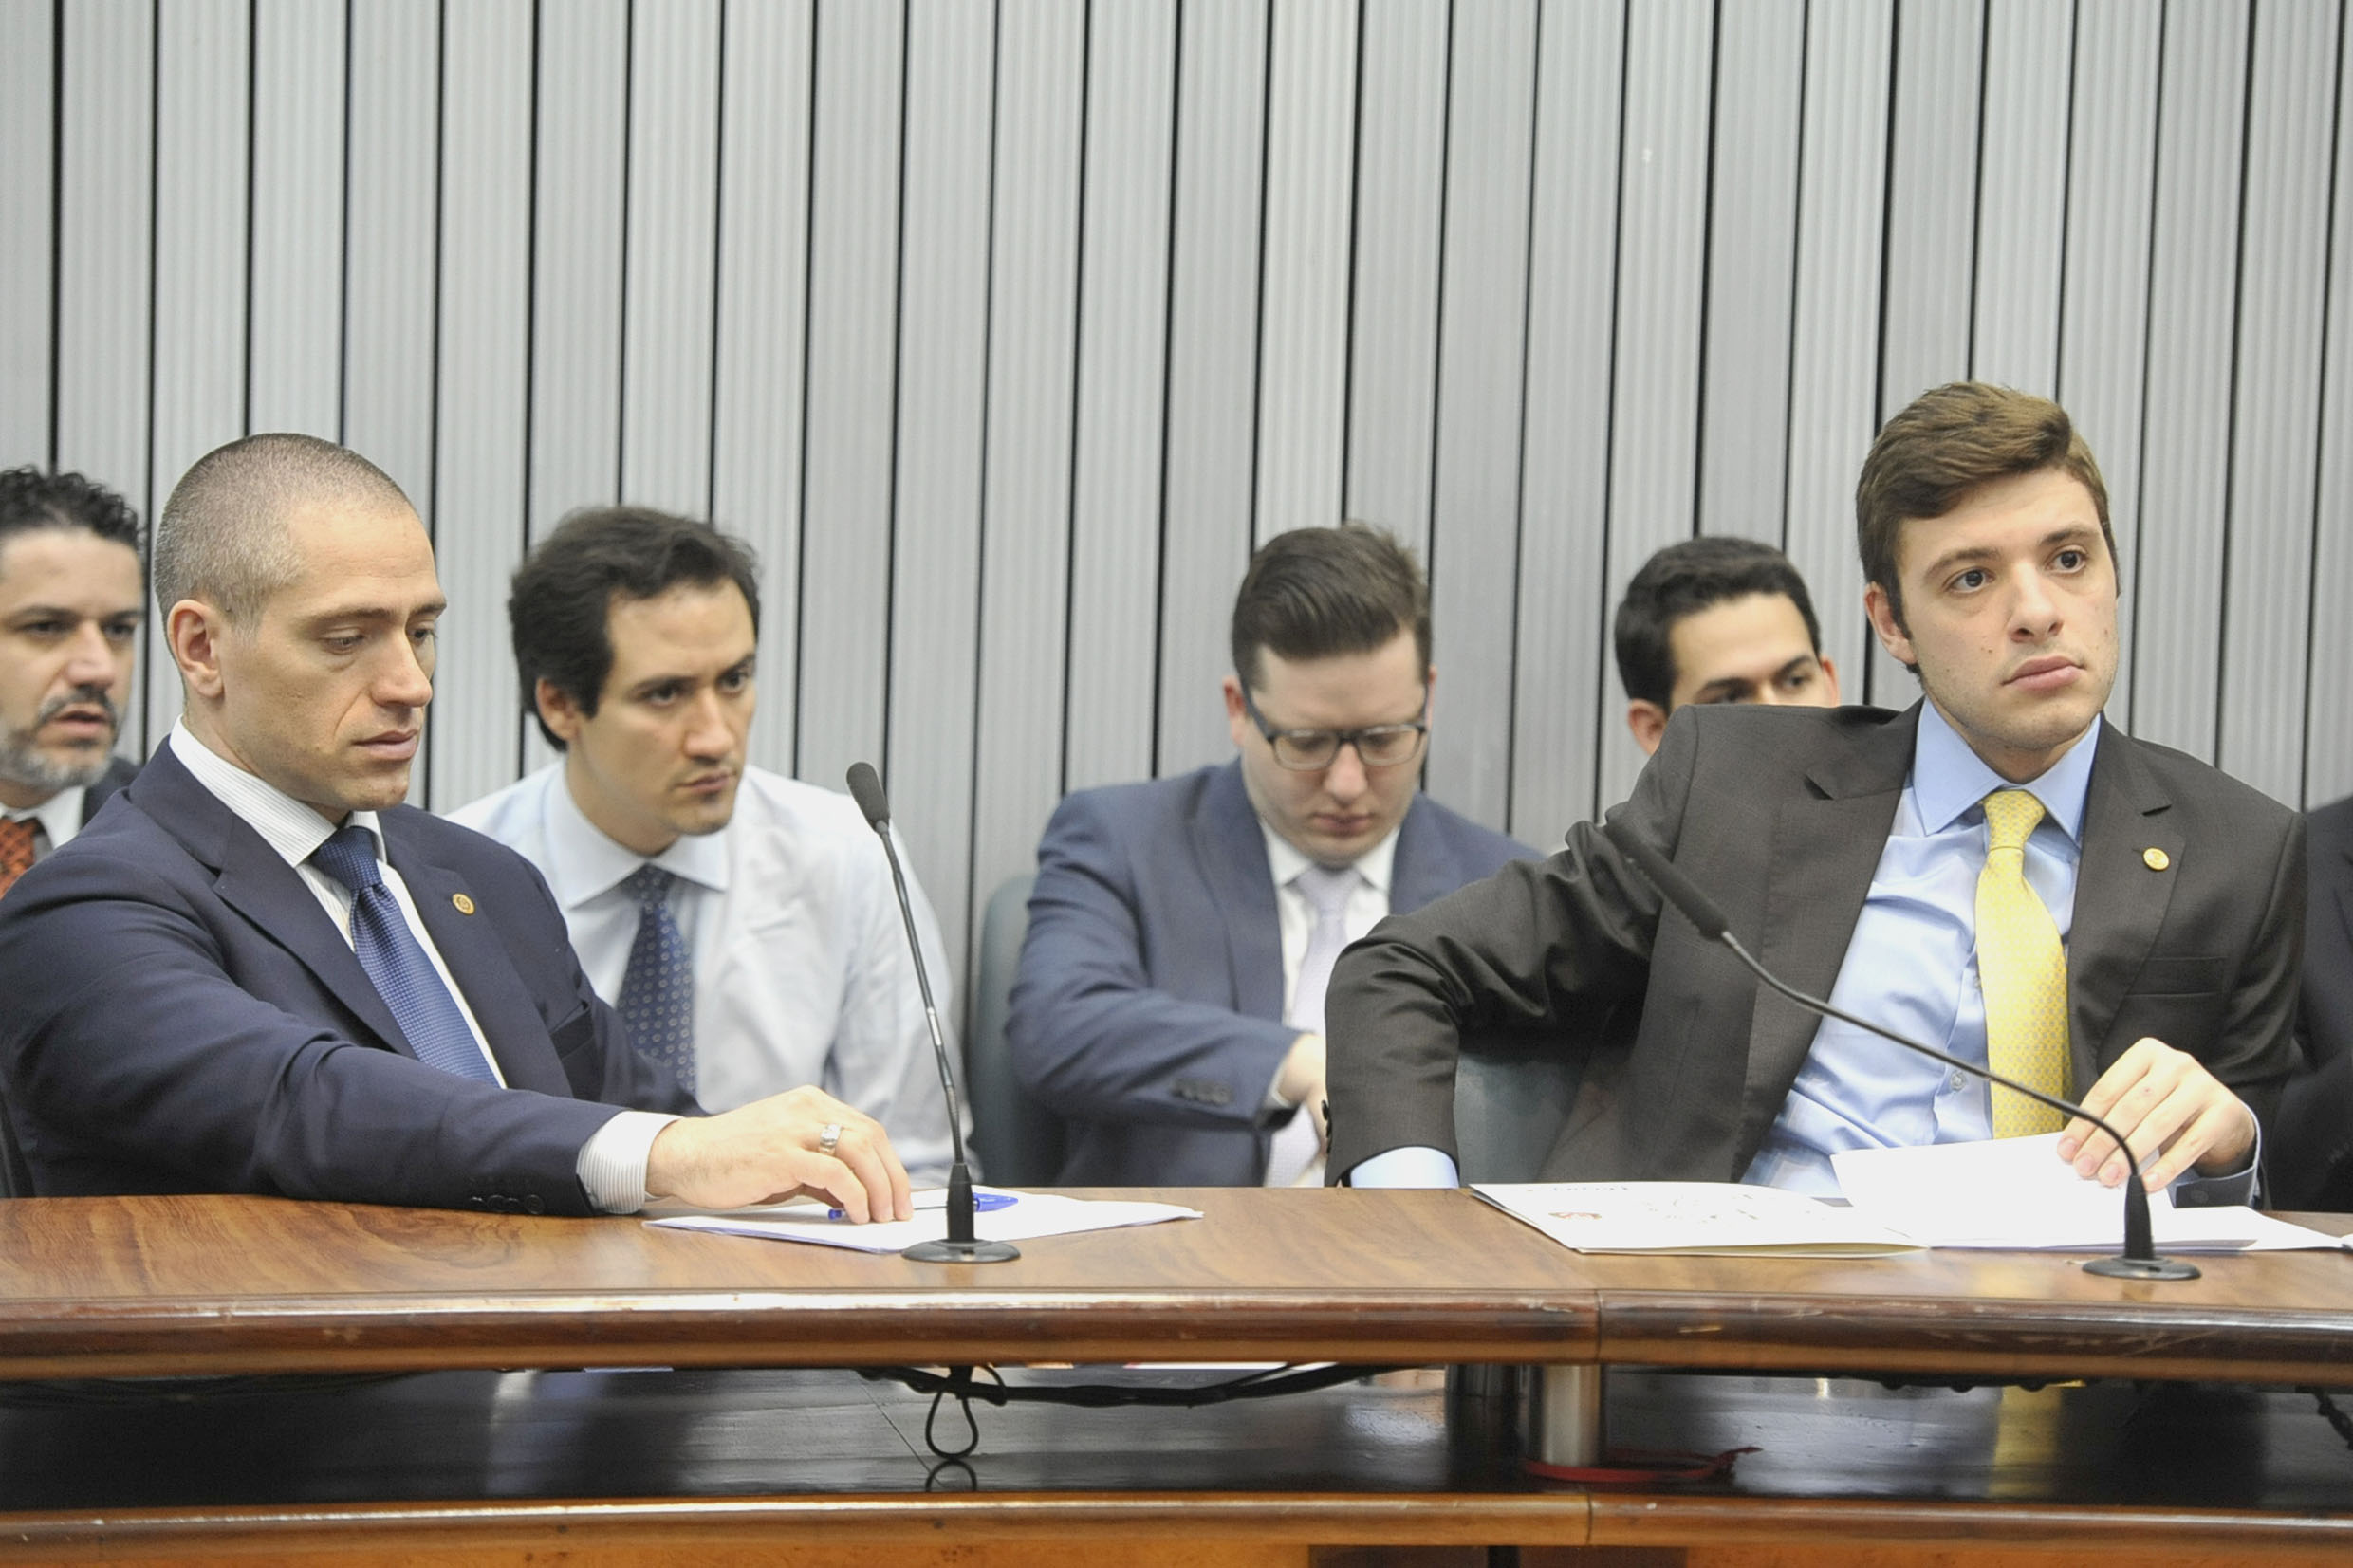 Parlamentares na comissão<a style='float:right' href='https://www3.al.sp.gov.br/repositorio/noticia/N-05-2019/fg234497.jpg' target=_blank><img src='/_img/material-file-download-white.png' width='14px' alt='Clique para baixar a imagem'></a>